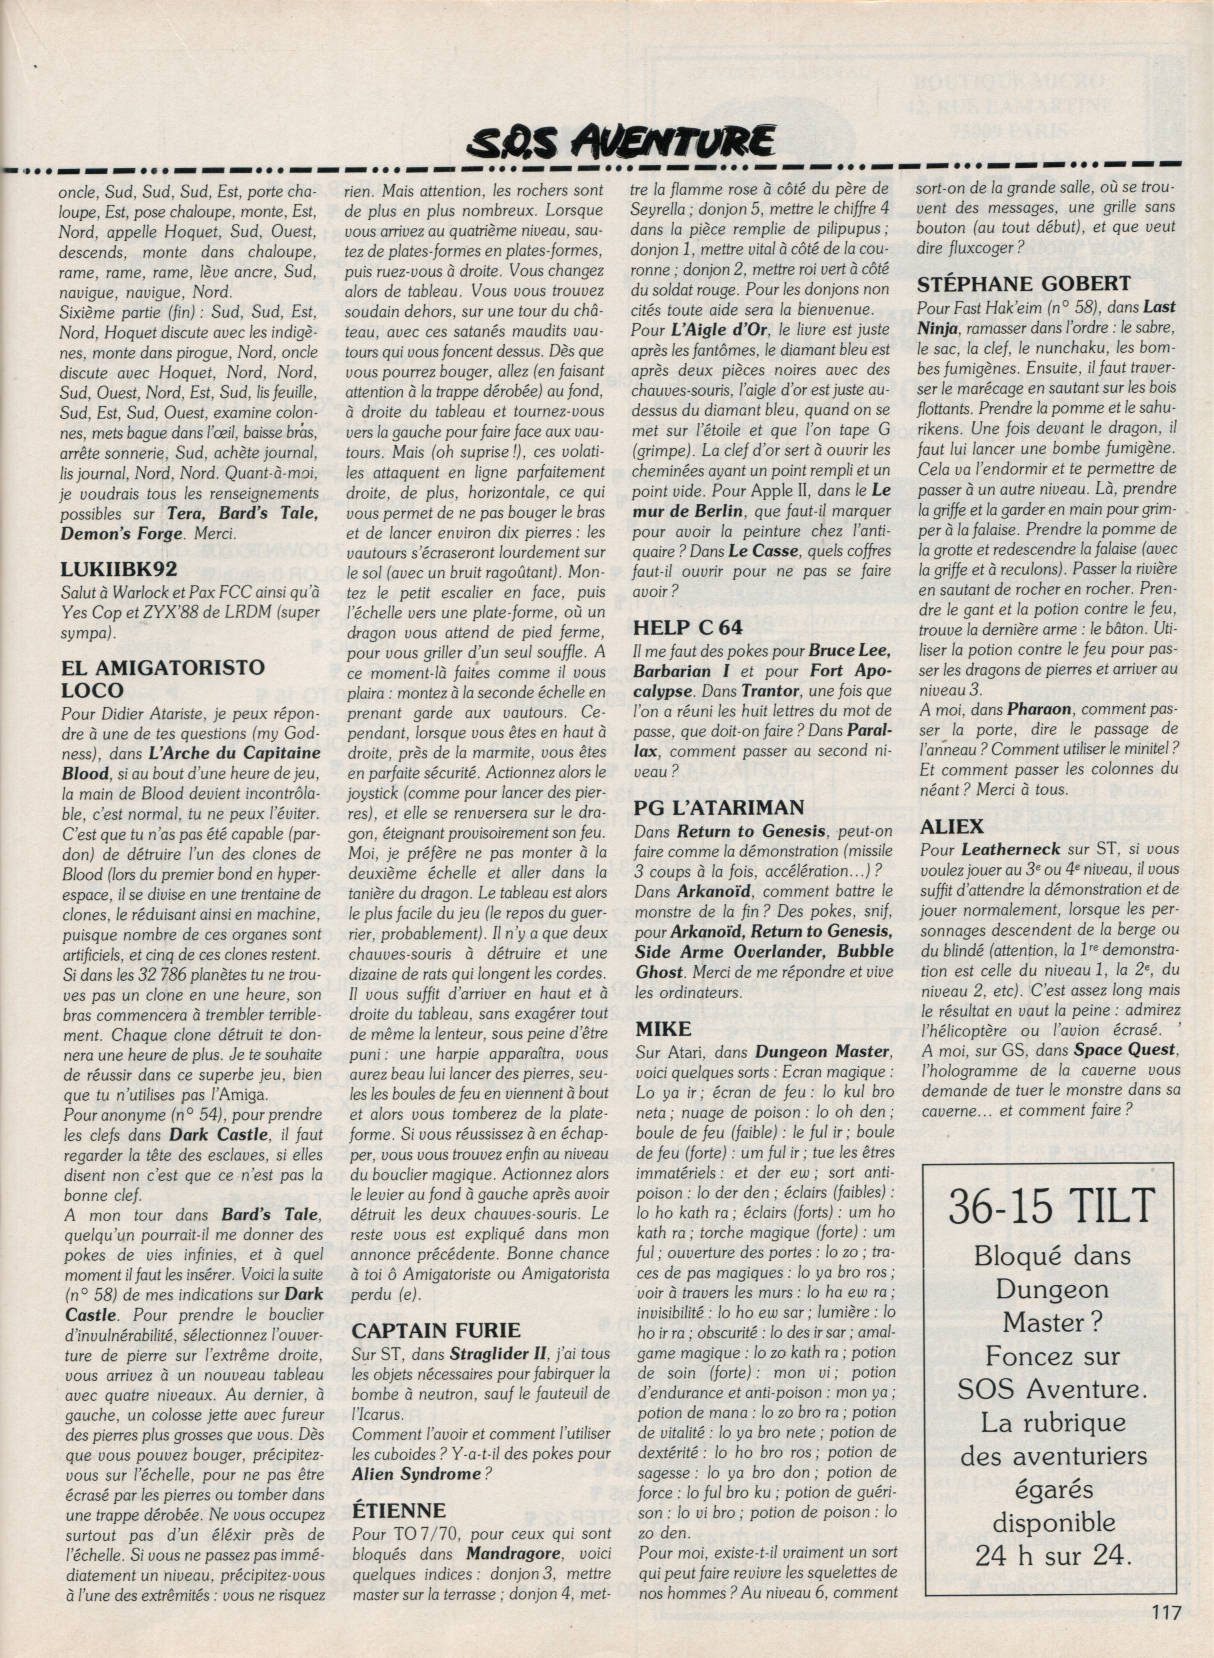 Dungeon Master Hints published in French magazine 'Tilt', Issue#62, January 1989, Page 117